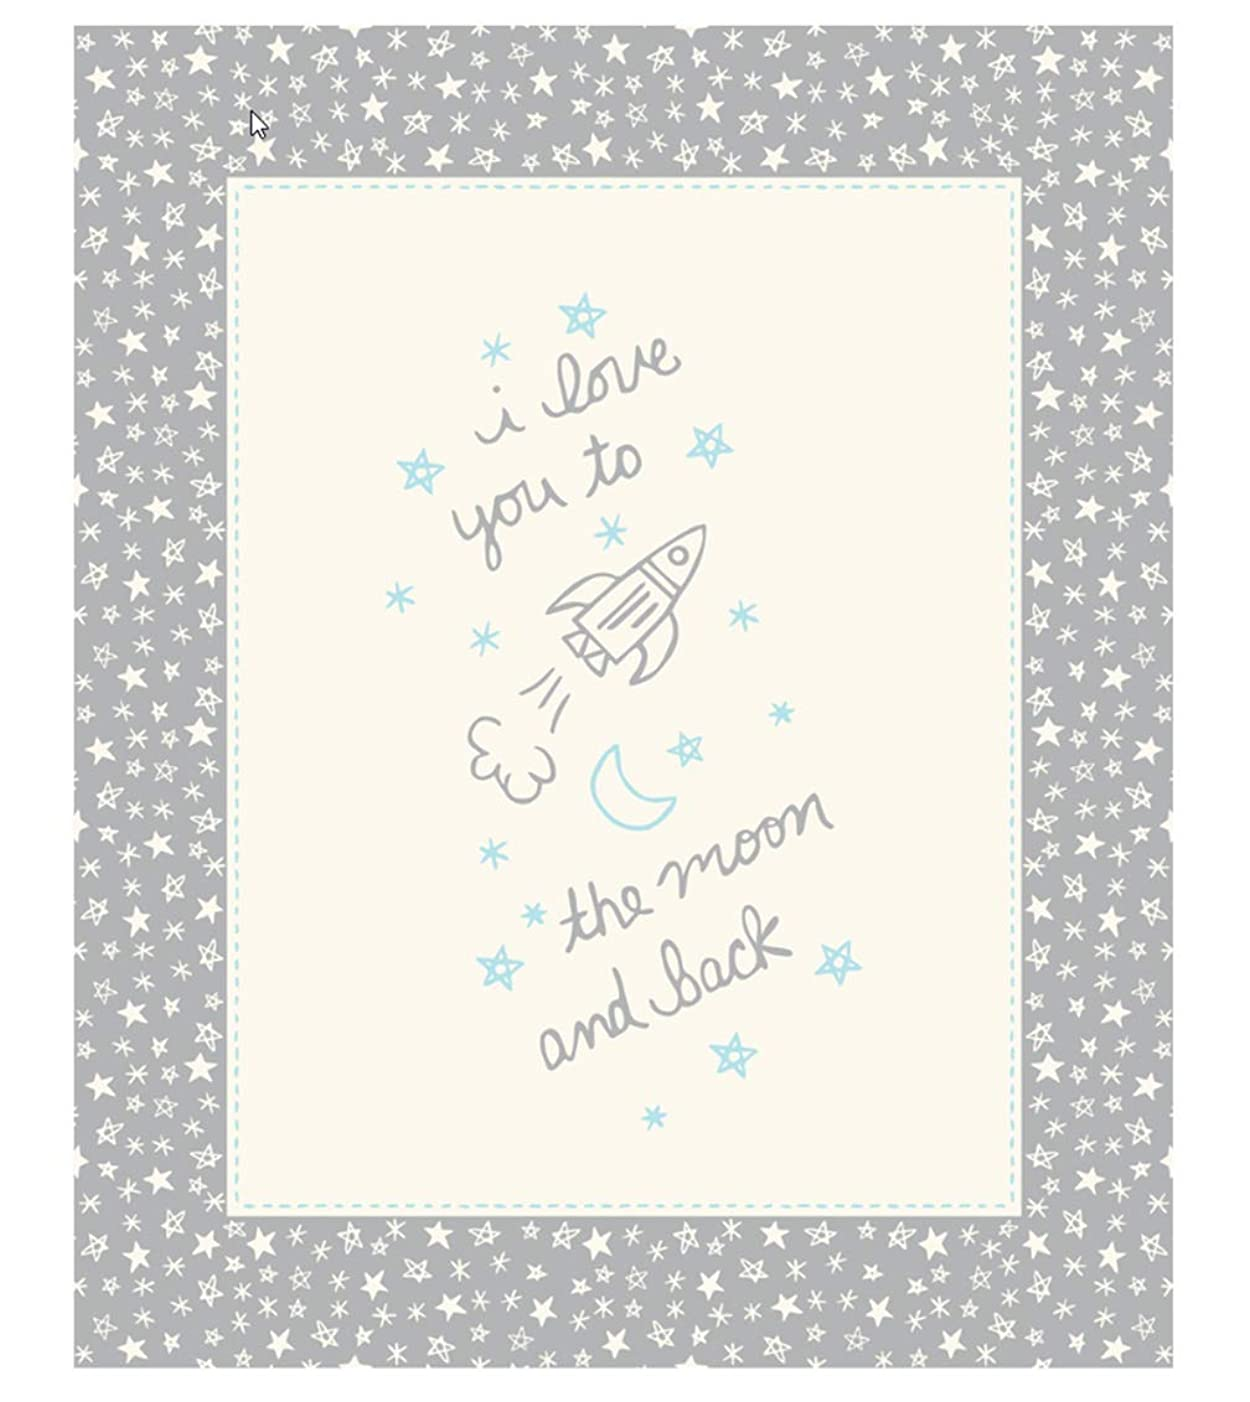 Soft Sweet Grey Flannel I Love You to The Moon and Back Panel by Stacy Iest HSU for Moda Fabrics